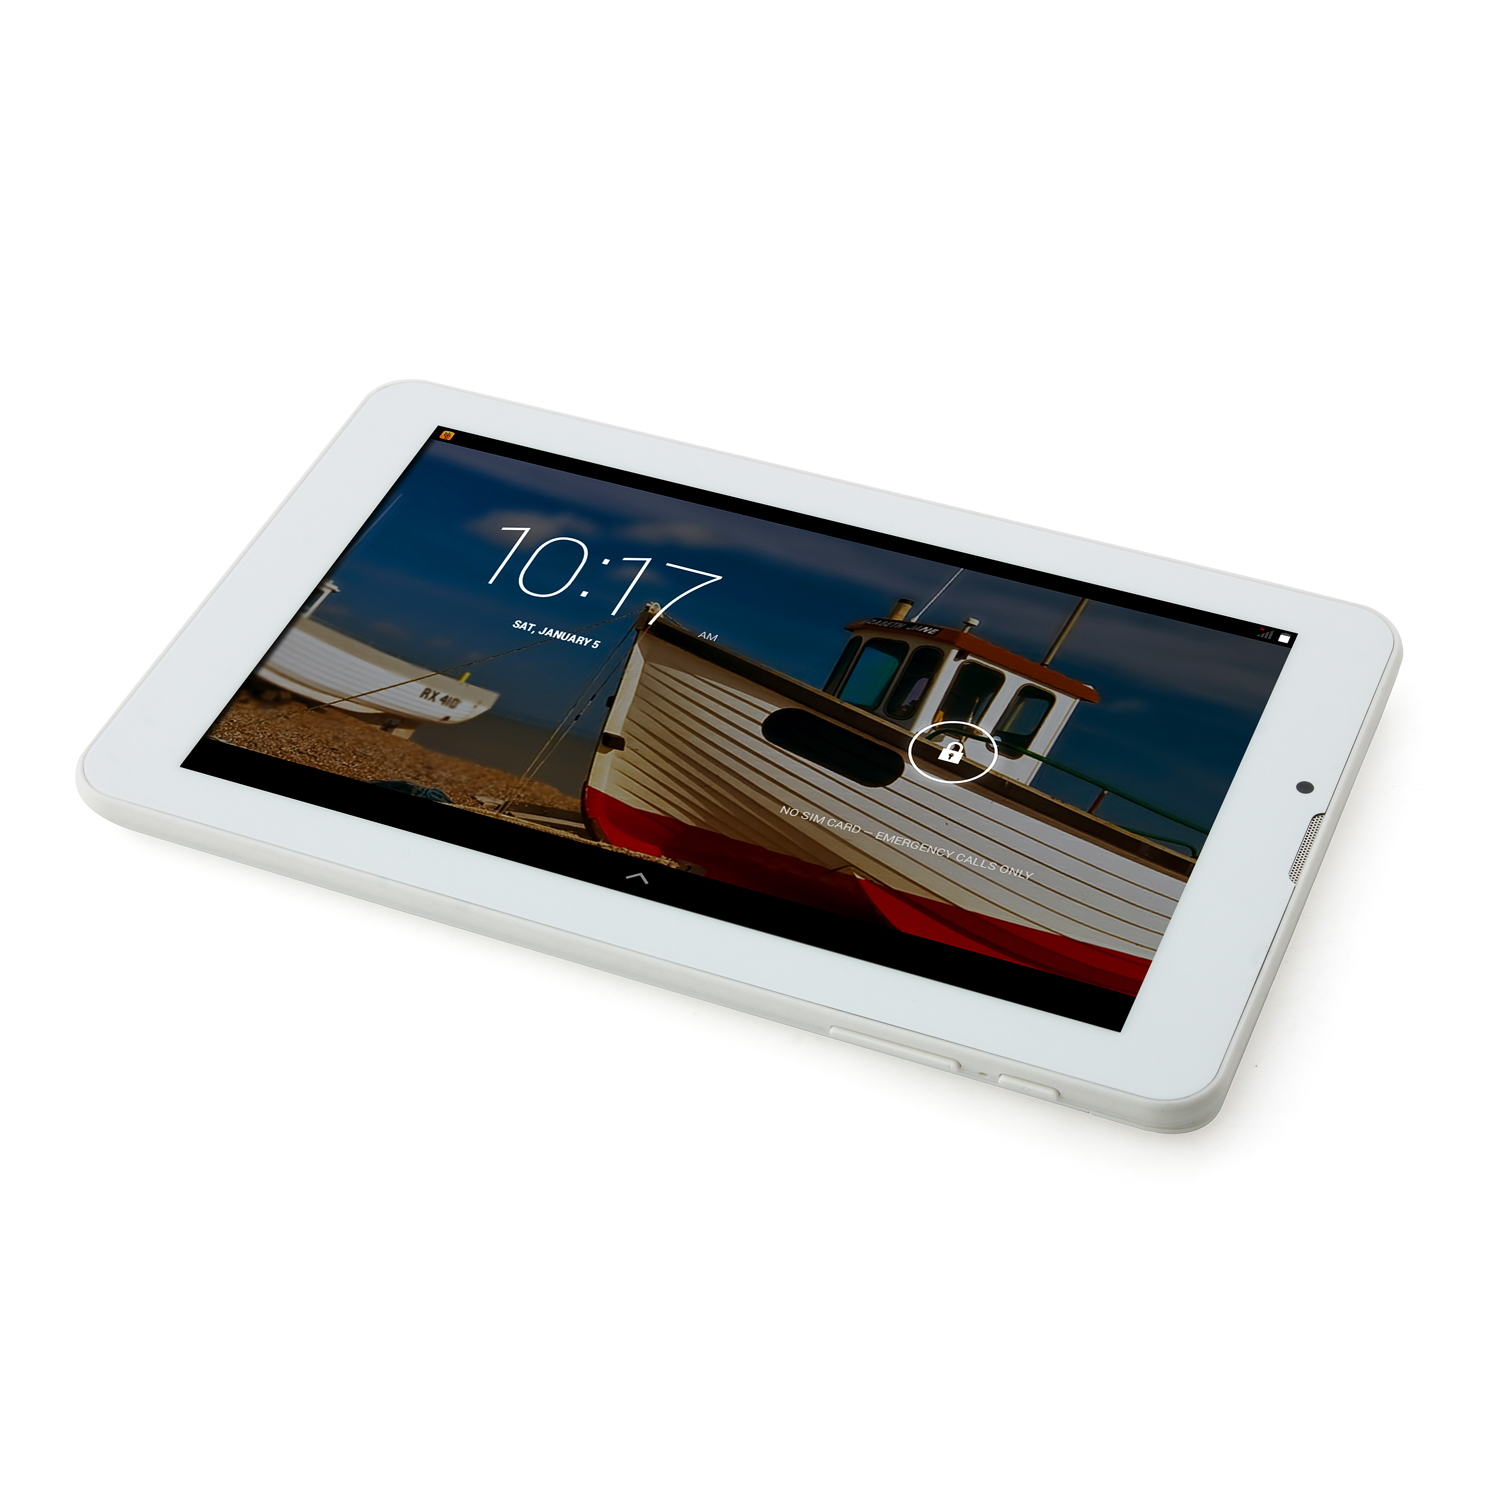 IC00 Q7 3G Tablet PC MTK8382 Quad Core 7.0 Inch Android 4.4 IPS Screen 8GB White